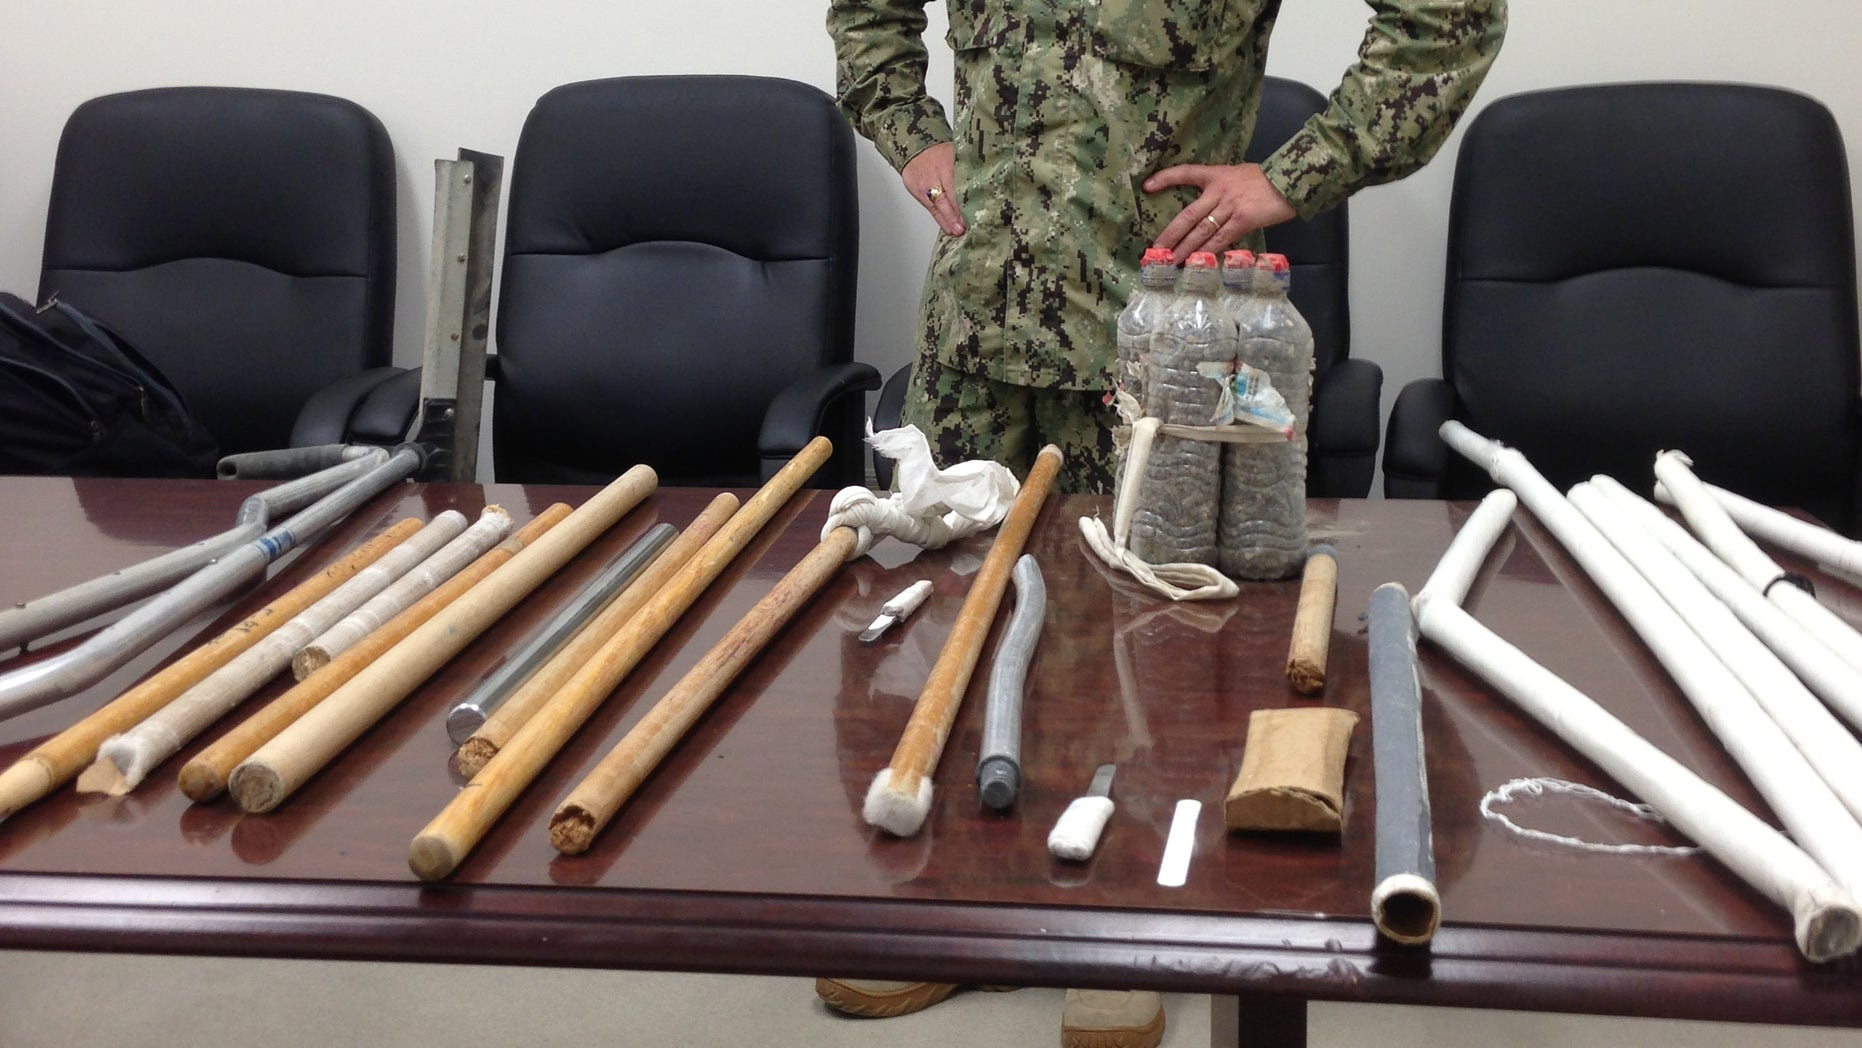 In this image reviewed by the U.S. Military, Navy Capt. Robert Durand stands next to some of the makeshift weapons, including broomsticks and batons made of plastic and steel, that were confiscated from prisoners at the Guantanamo Bay prison following a Saturday clash between prisoners and guards, on display for the press at the U.S. Naval Base Guantanamo Bay in Cuba, Tuesday, April 16, 2013. Soldiers with riot helmets and shields swept into recreation yards and met with resistance from several dozen prisoners, the leadership of the detention center said. The guard force raided Camp 6 because the prisoners had for several weeks covered up 147 of the 160 security cameras, making it impossible to monitor them amid a weeks long hunger strike.  The hunger strike goes on, with 45 prisoners refusing meals and 13 being force fed, officials said. (AP Photo/Ben Fox)